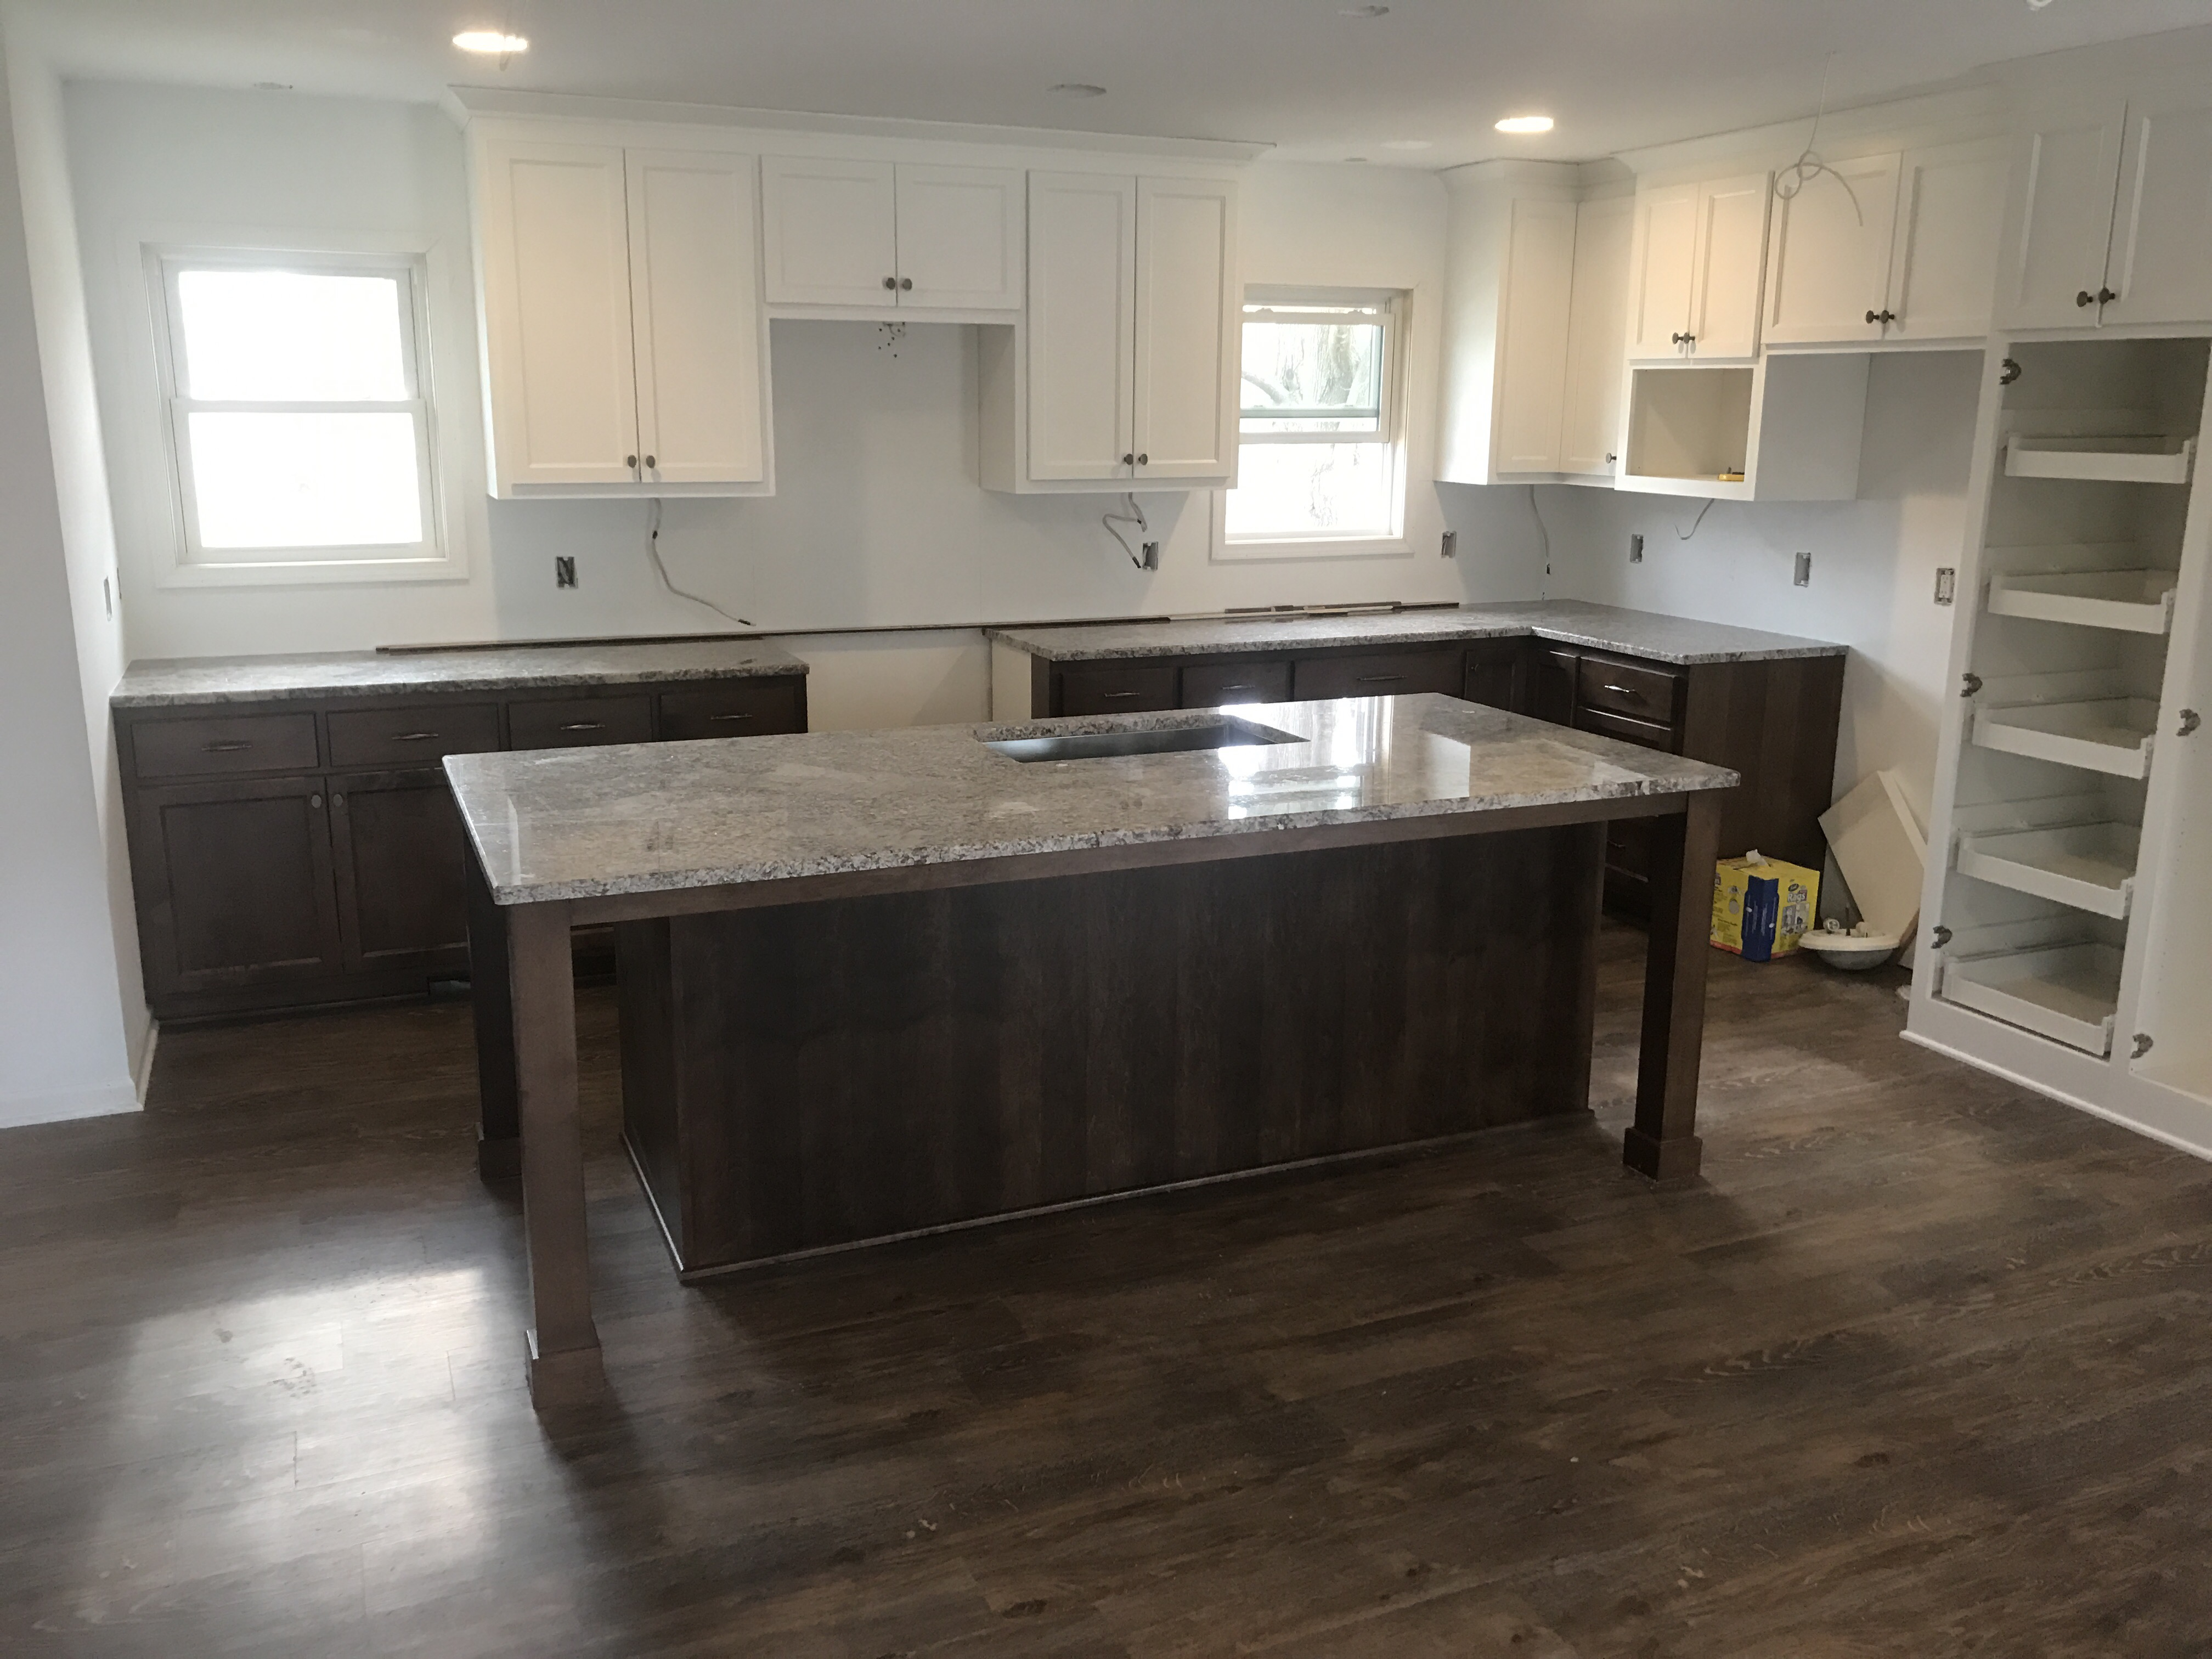 bloomington kitchen remodel - granite countertops installed - attics